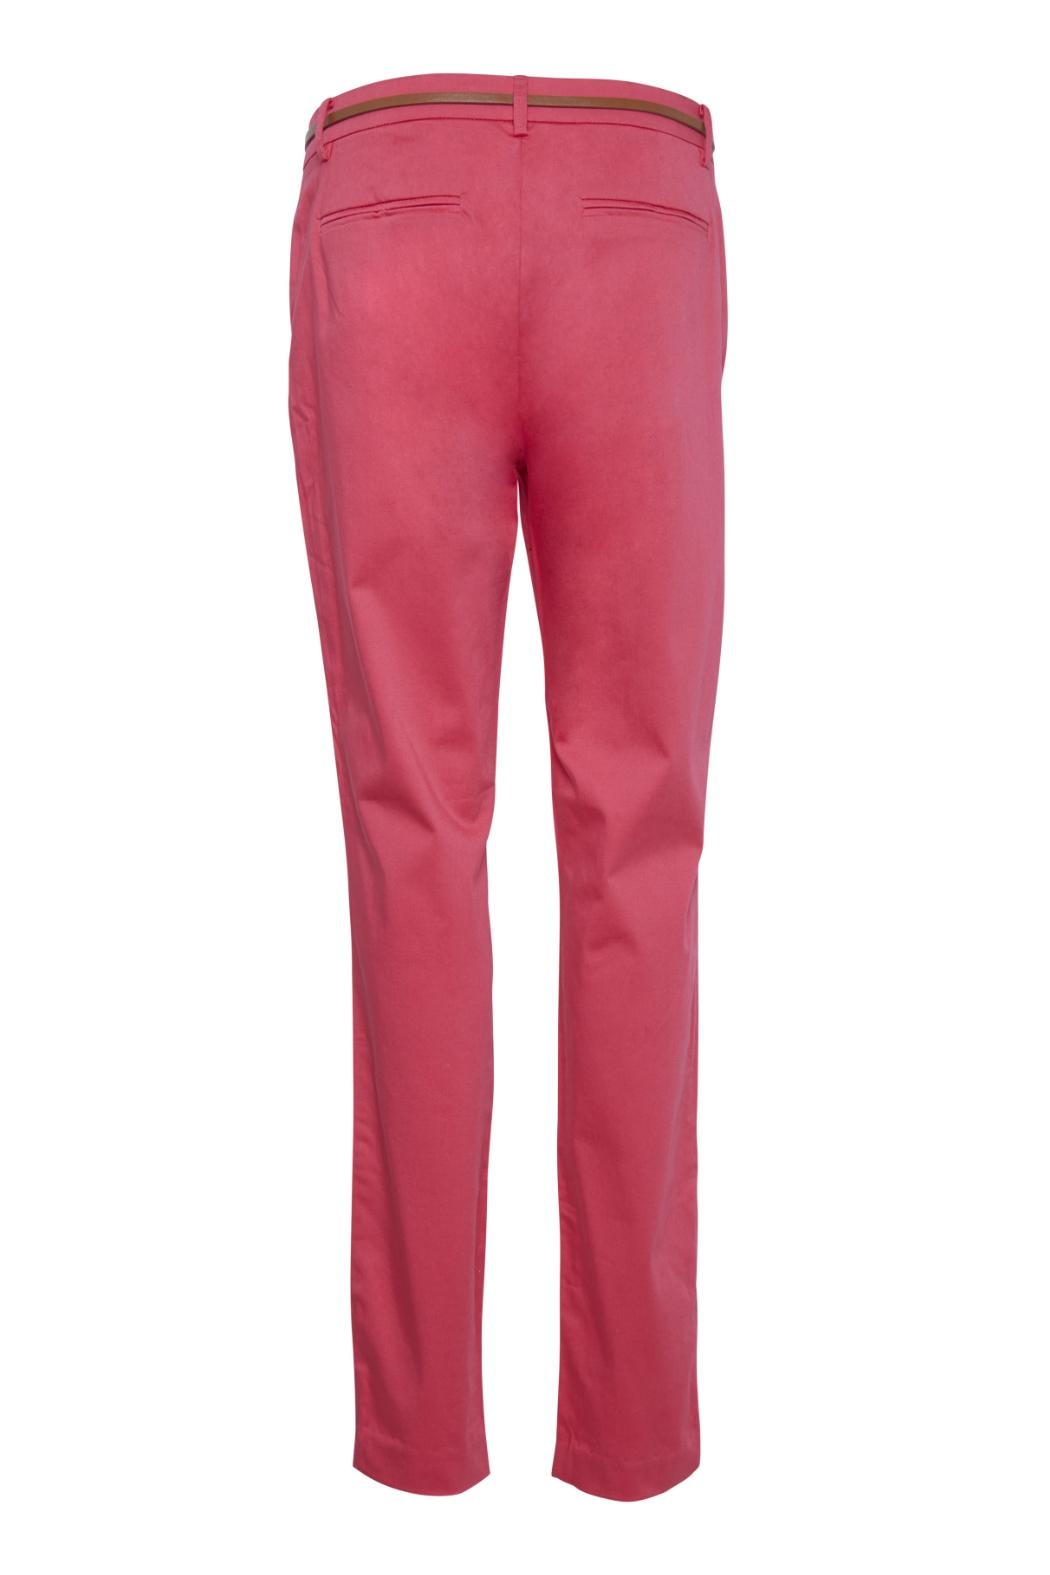 B.young Bright Pink Pant - Front Full Image